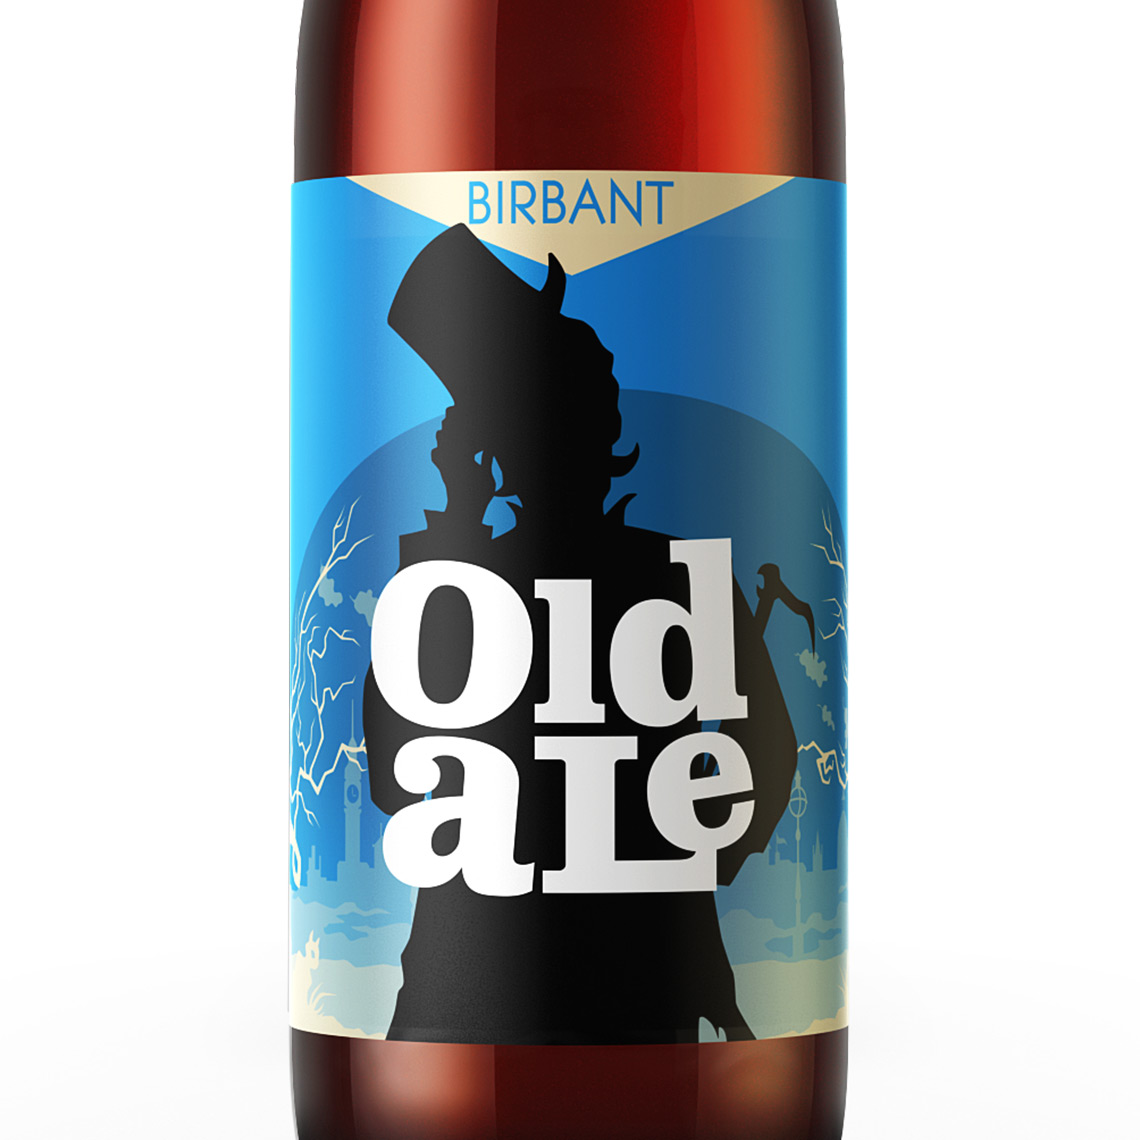 BIRBANT OLD ALE